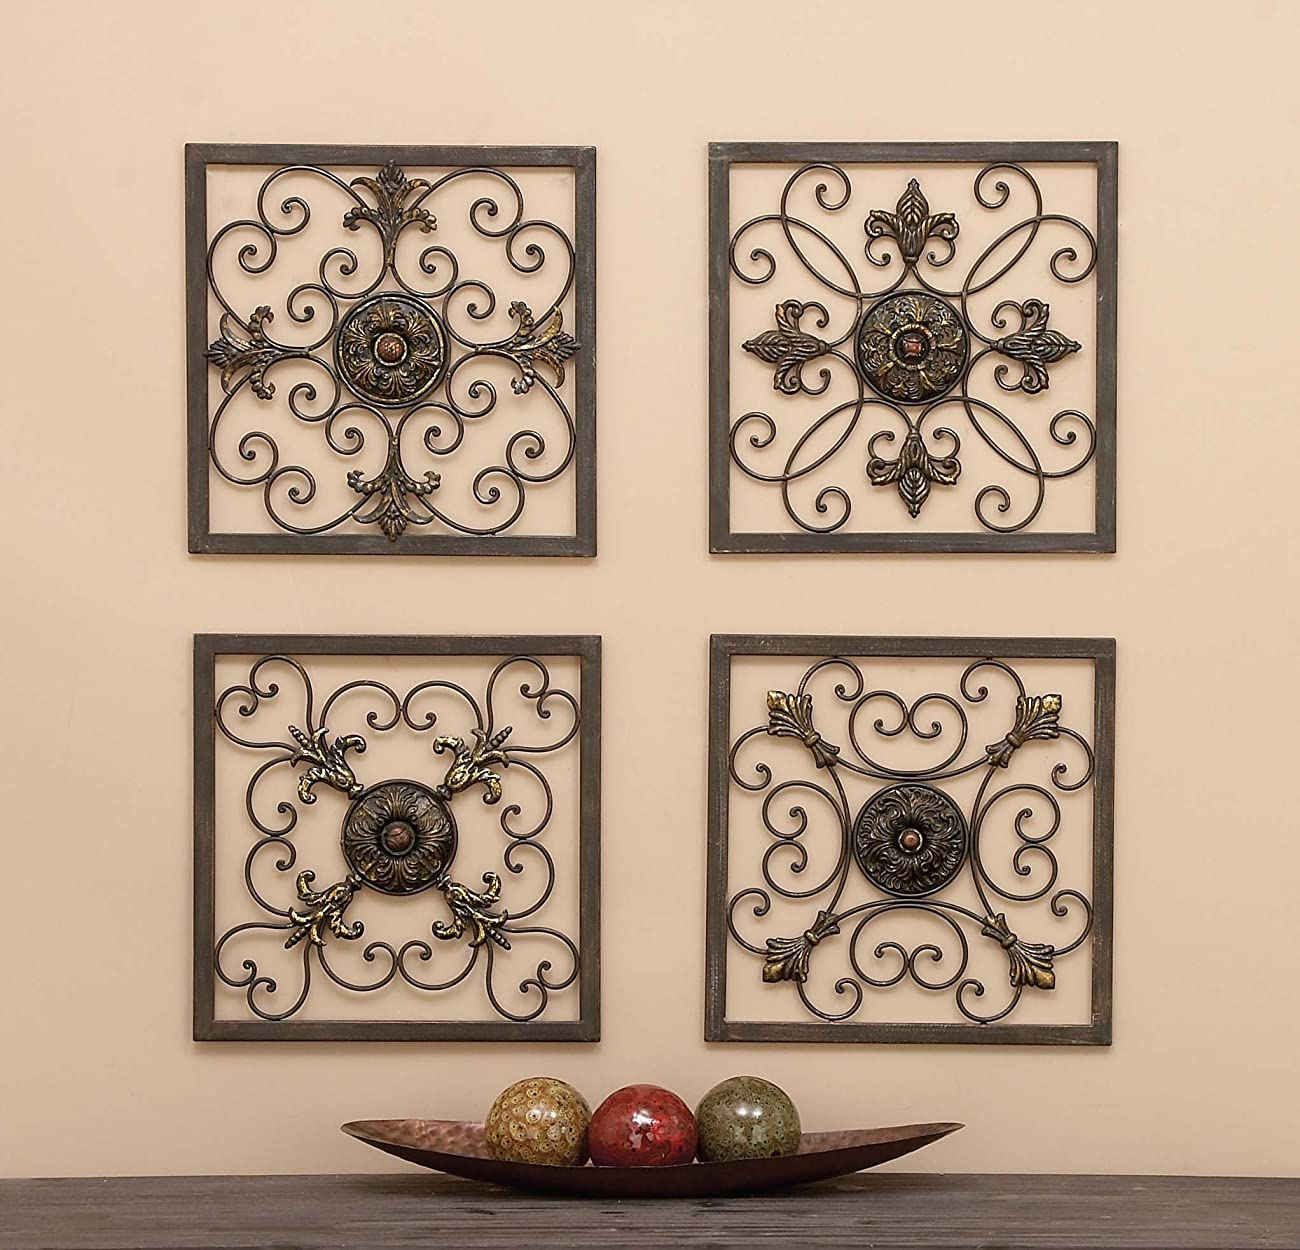 Aspire Metal Wall Plaque Set, Antique Bronze 1